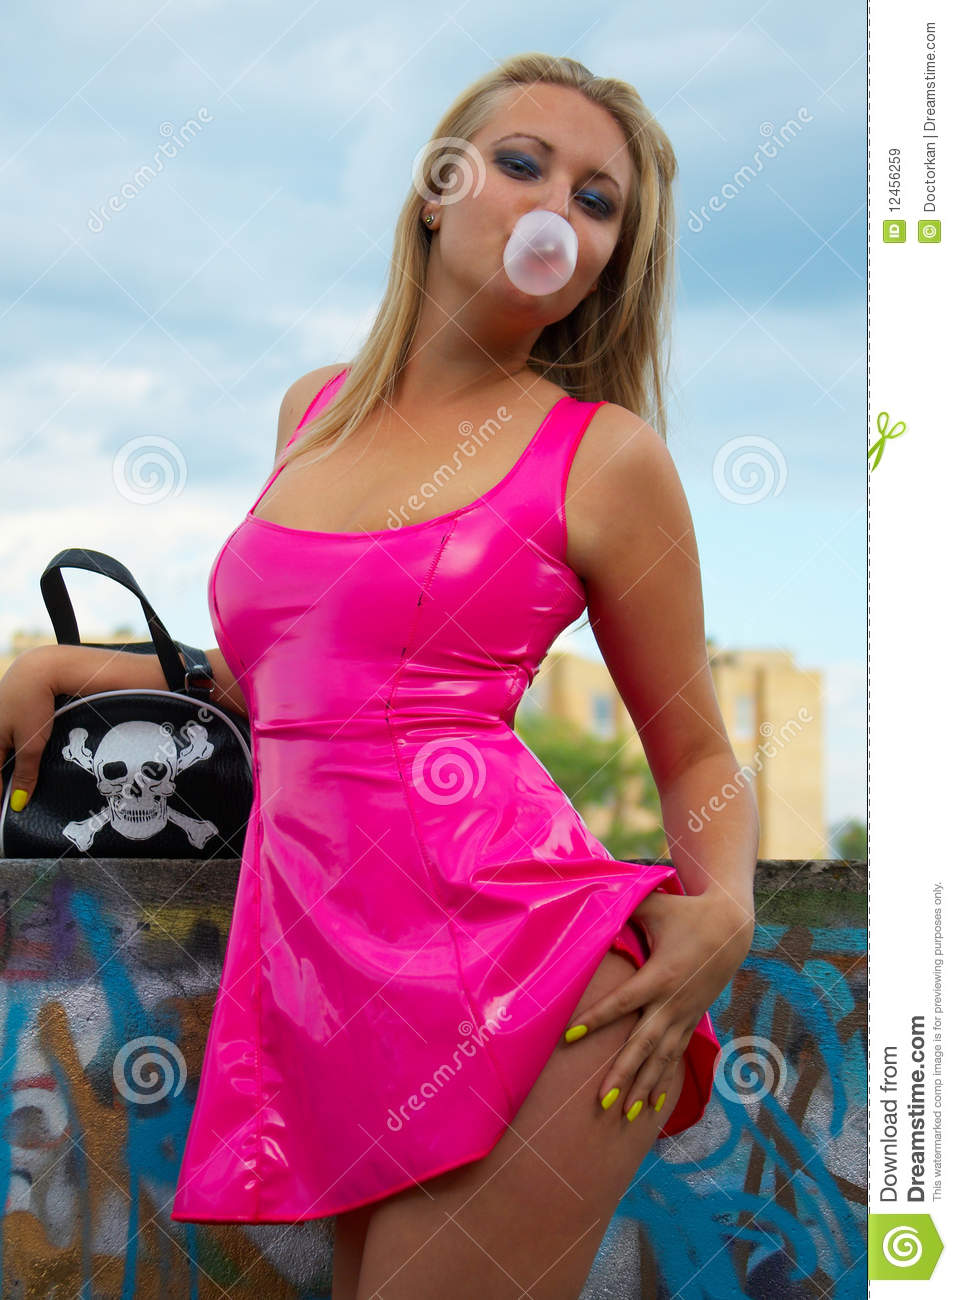 Wallpaper Of Stylish Little Girl Babe In Pink Latex Stock Image Image Of Streetwalker